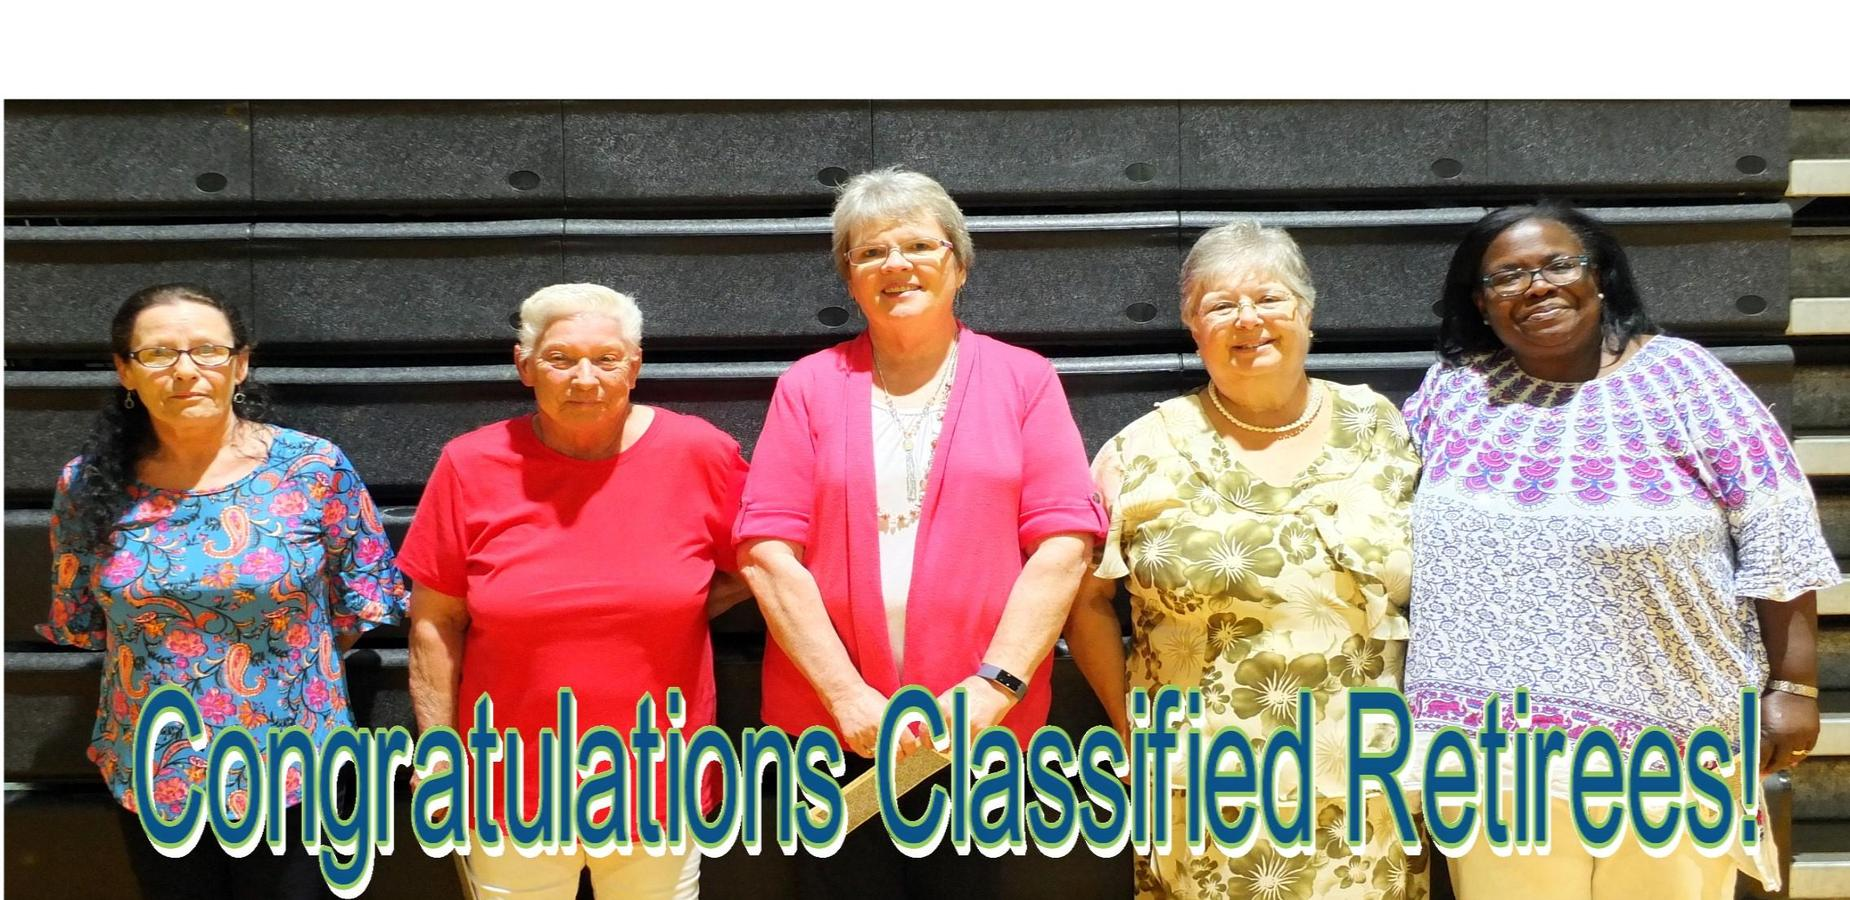 Classified Retirees